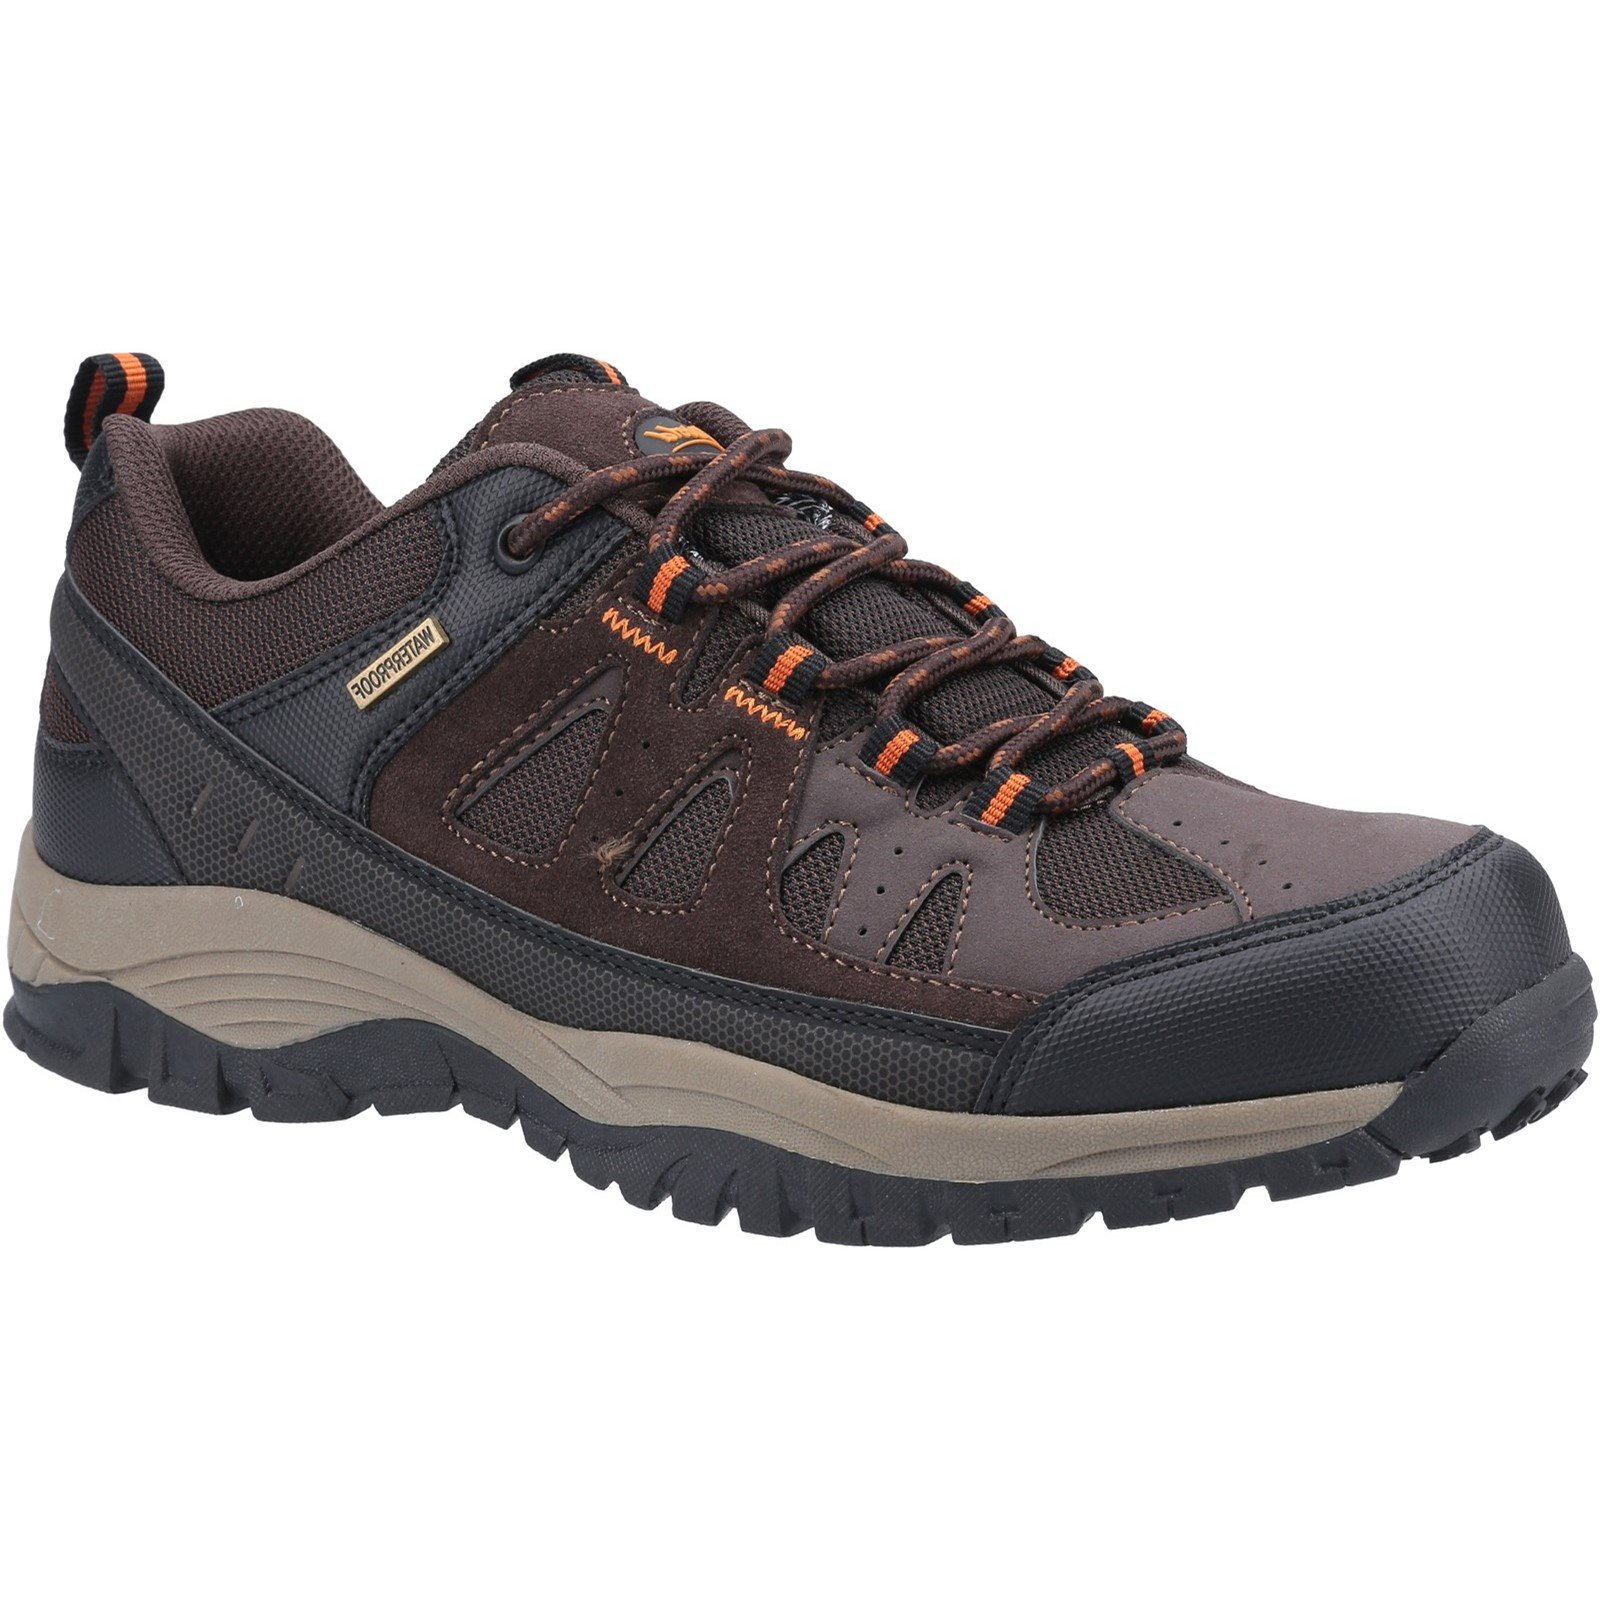 Cotswold Men's Maisemore Low Hiking Boot 32987 - Brown 11